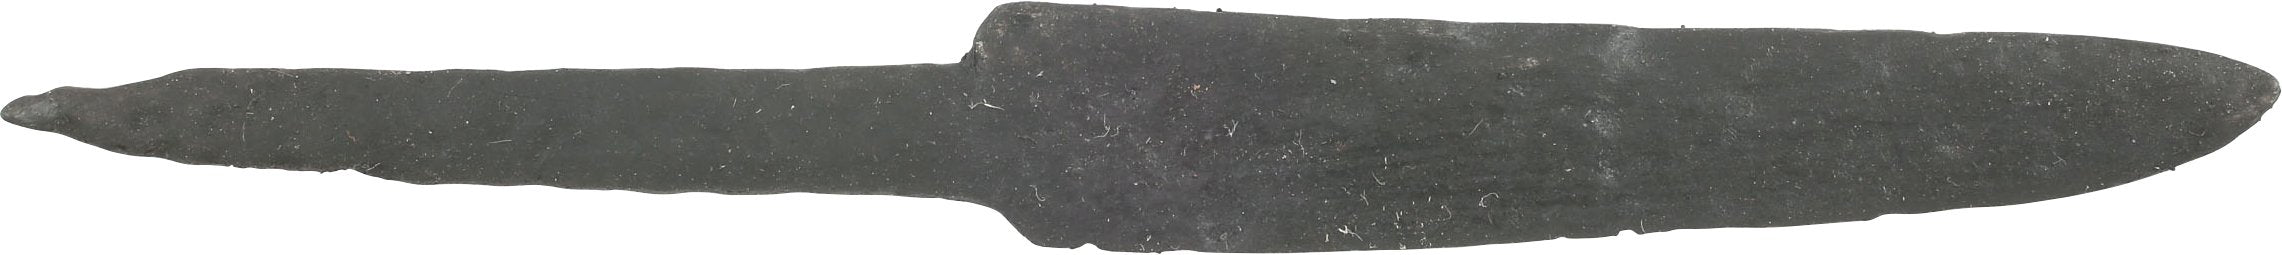 VIKING SIDE KNIFE OR POUCH KNIFE 866-1067 AD CAMBRIDGESHIRE ENGLAND - Product